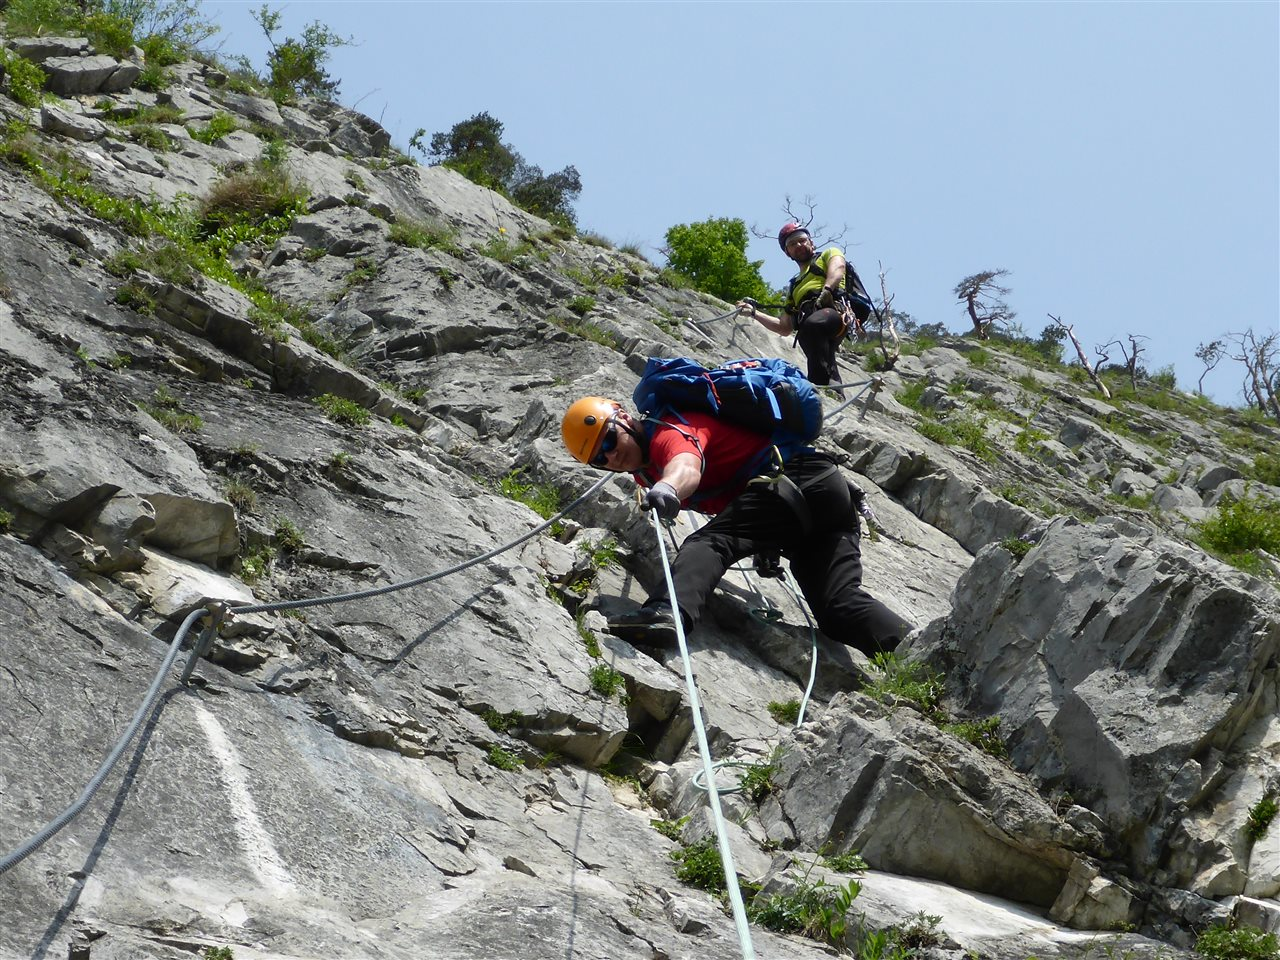 Klettersteig English : Update klettersteig alpenverein